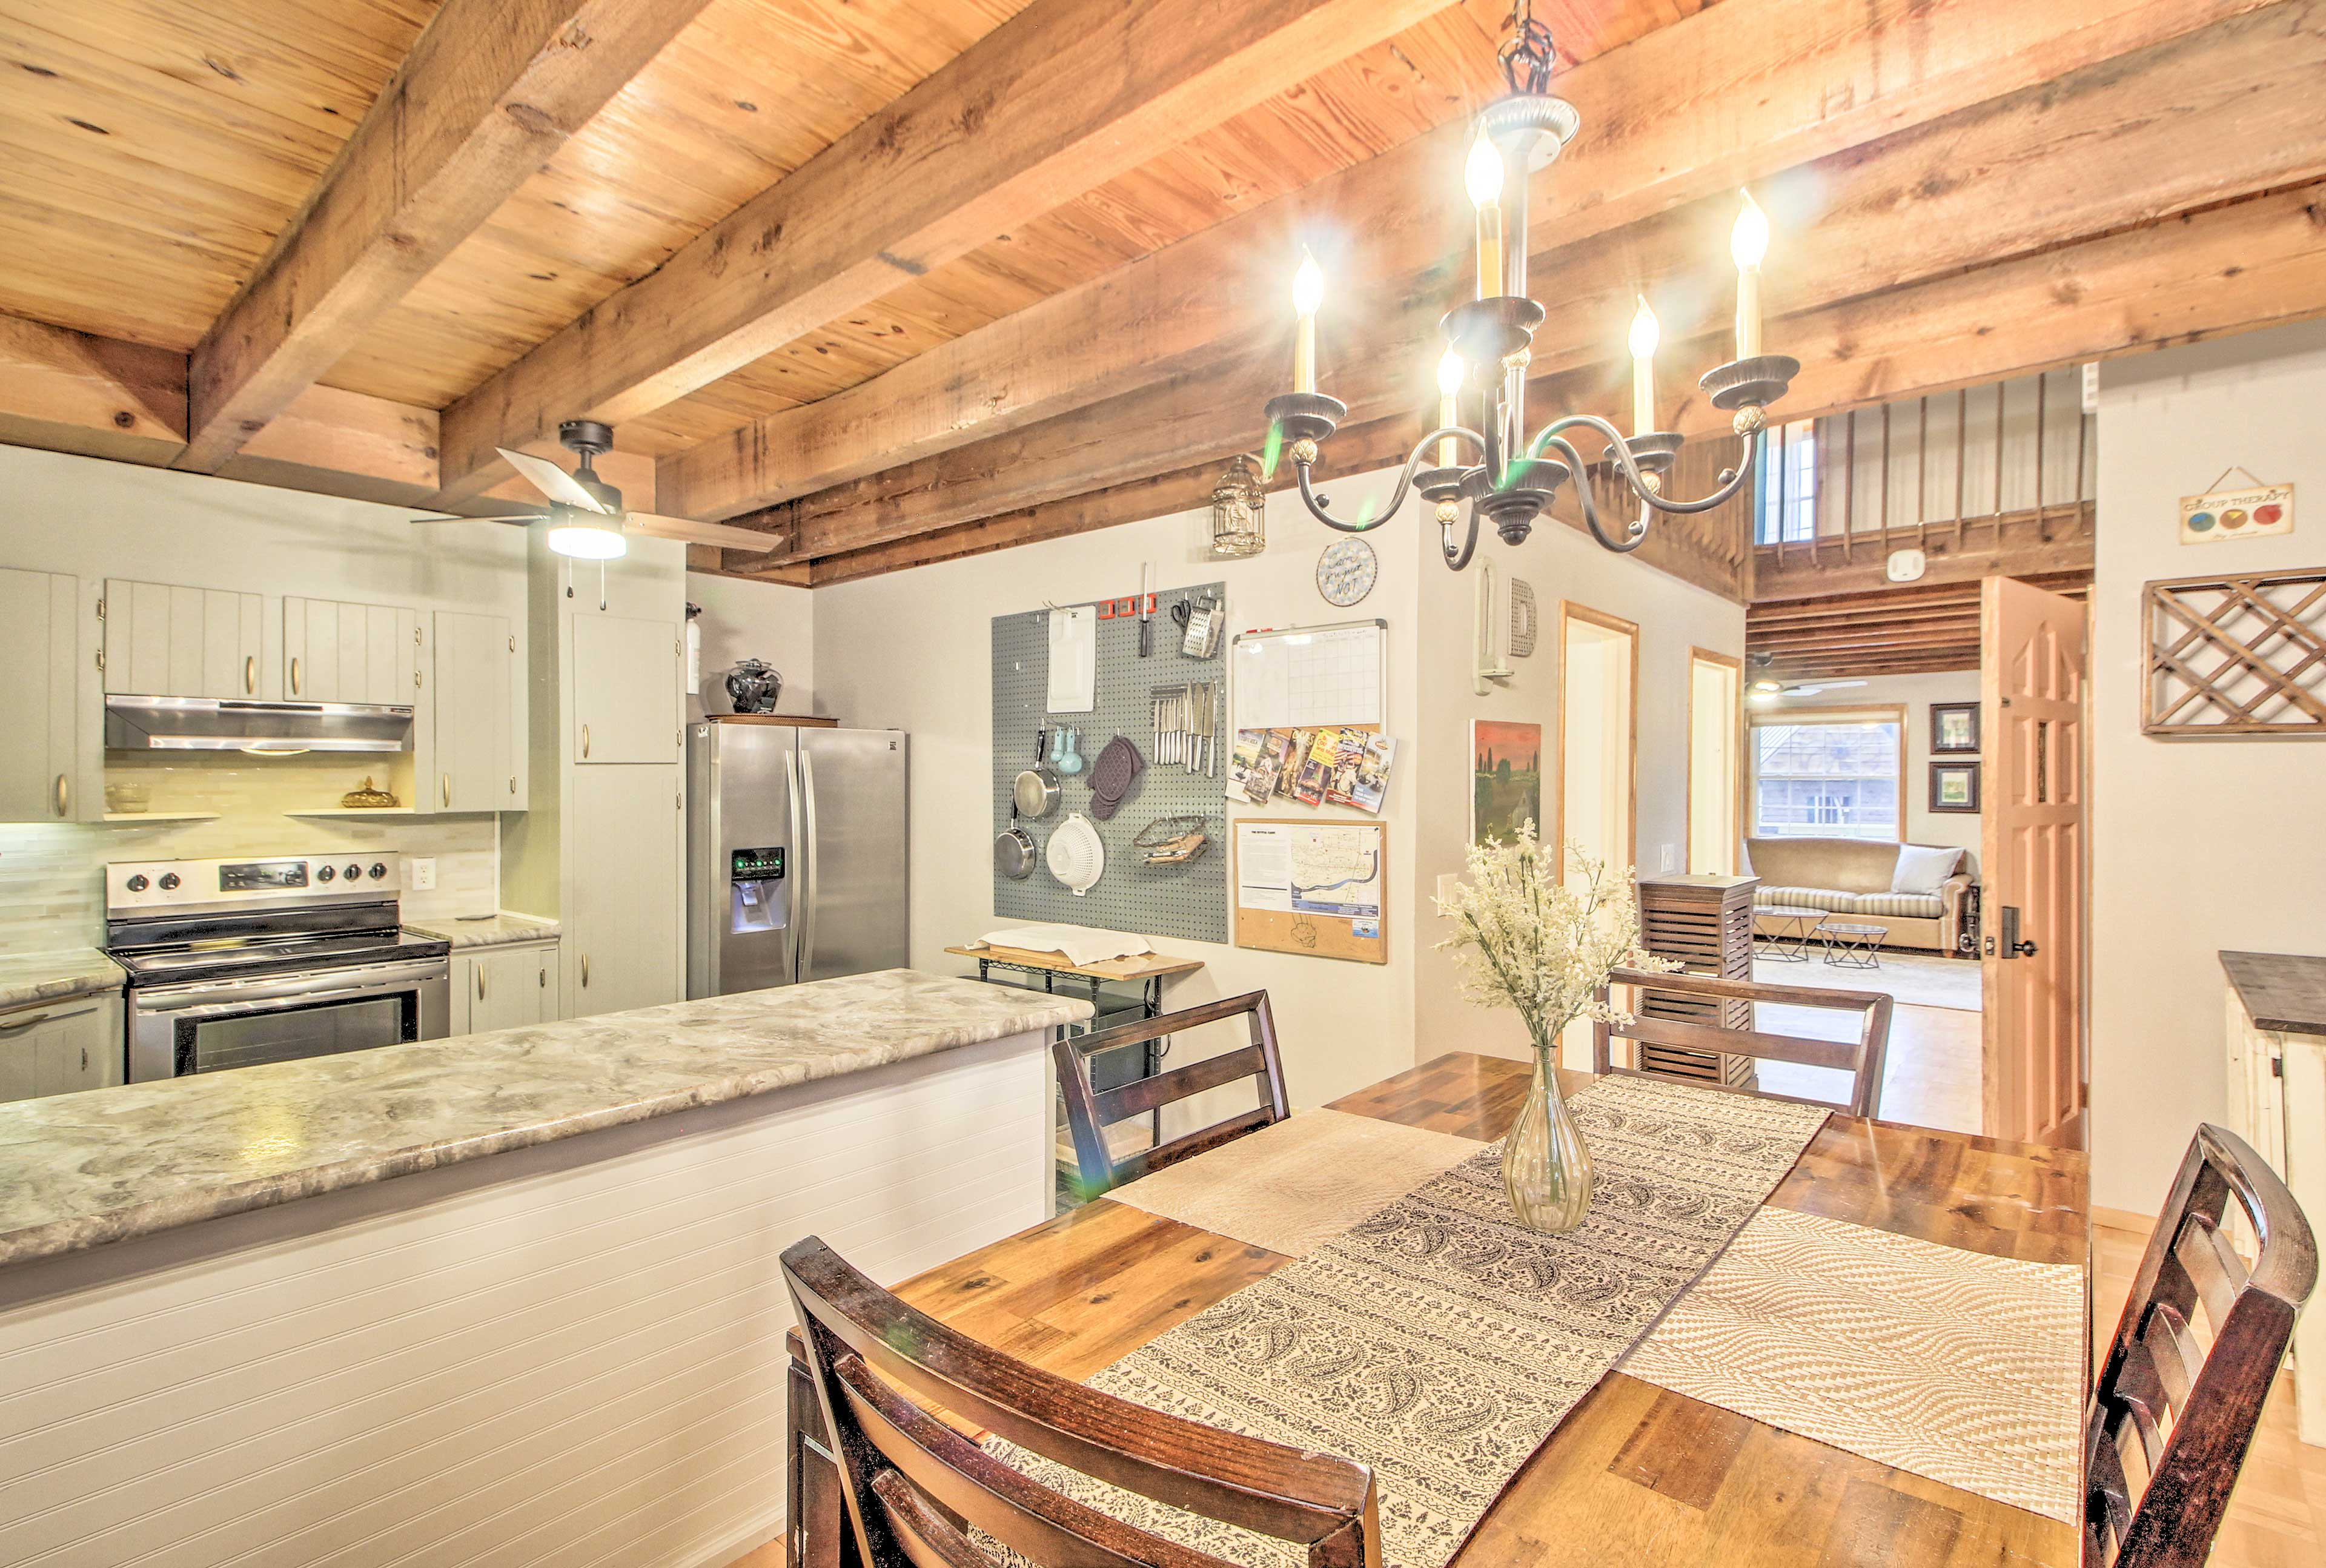 Take advantage of the stainless steel appliances that the kitchen has to offer.